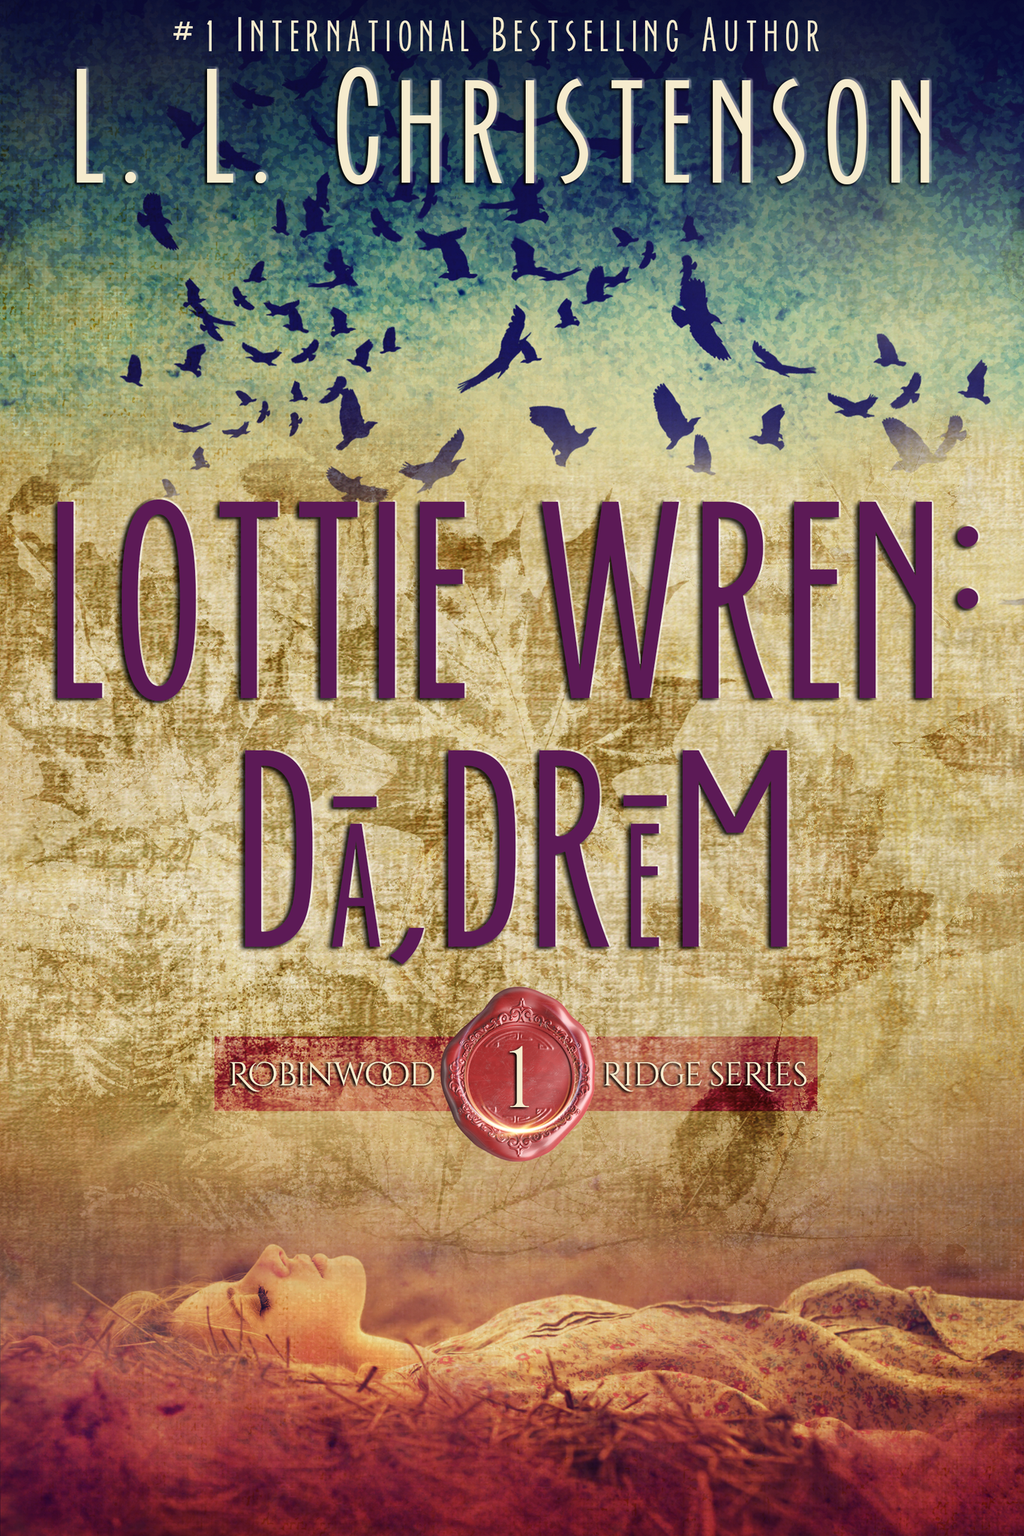 Lottie Wren: ˈdāˌdrēm, Episode 1, Robinwood Ridge